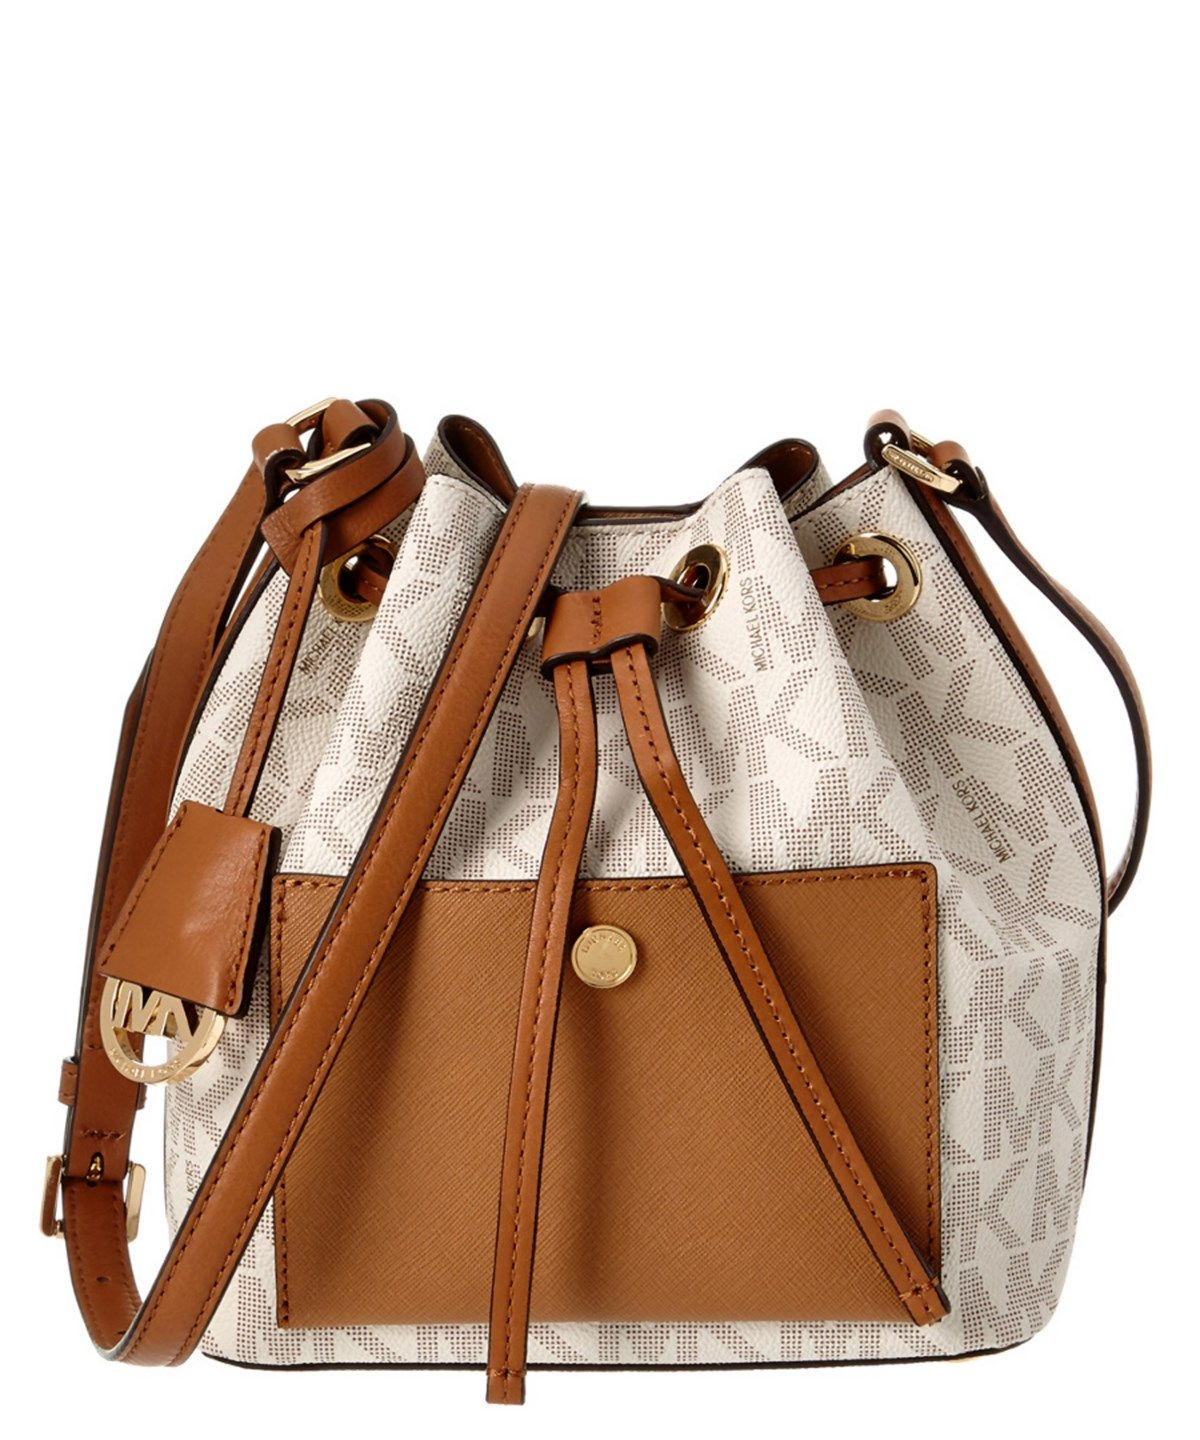 0e14c4175a1a MICHAEL MICHAEL KORS MICHAEL MICHAEL KORS GREENWICH SMALL LEATHER BUCKET BAG .   michaelmichaelkors  bags  shoulder bags  leather  bucket  lining